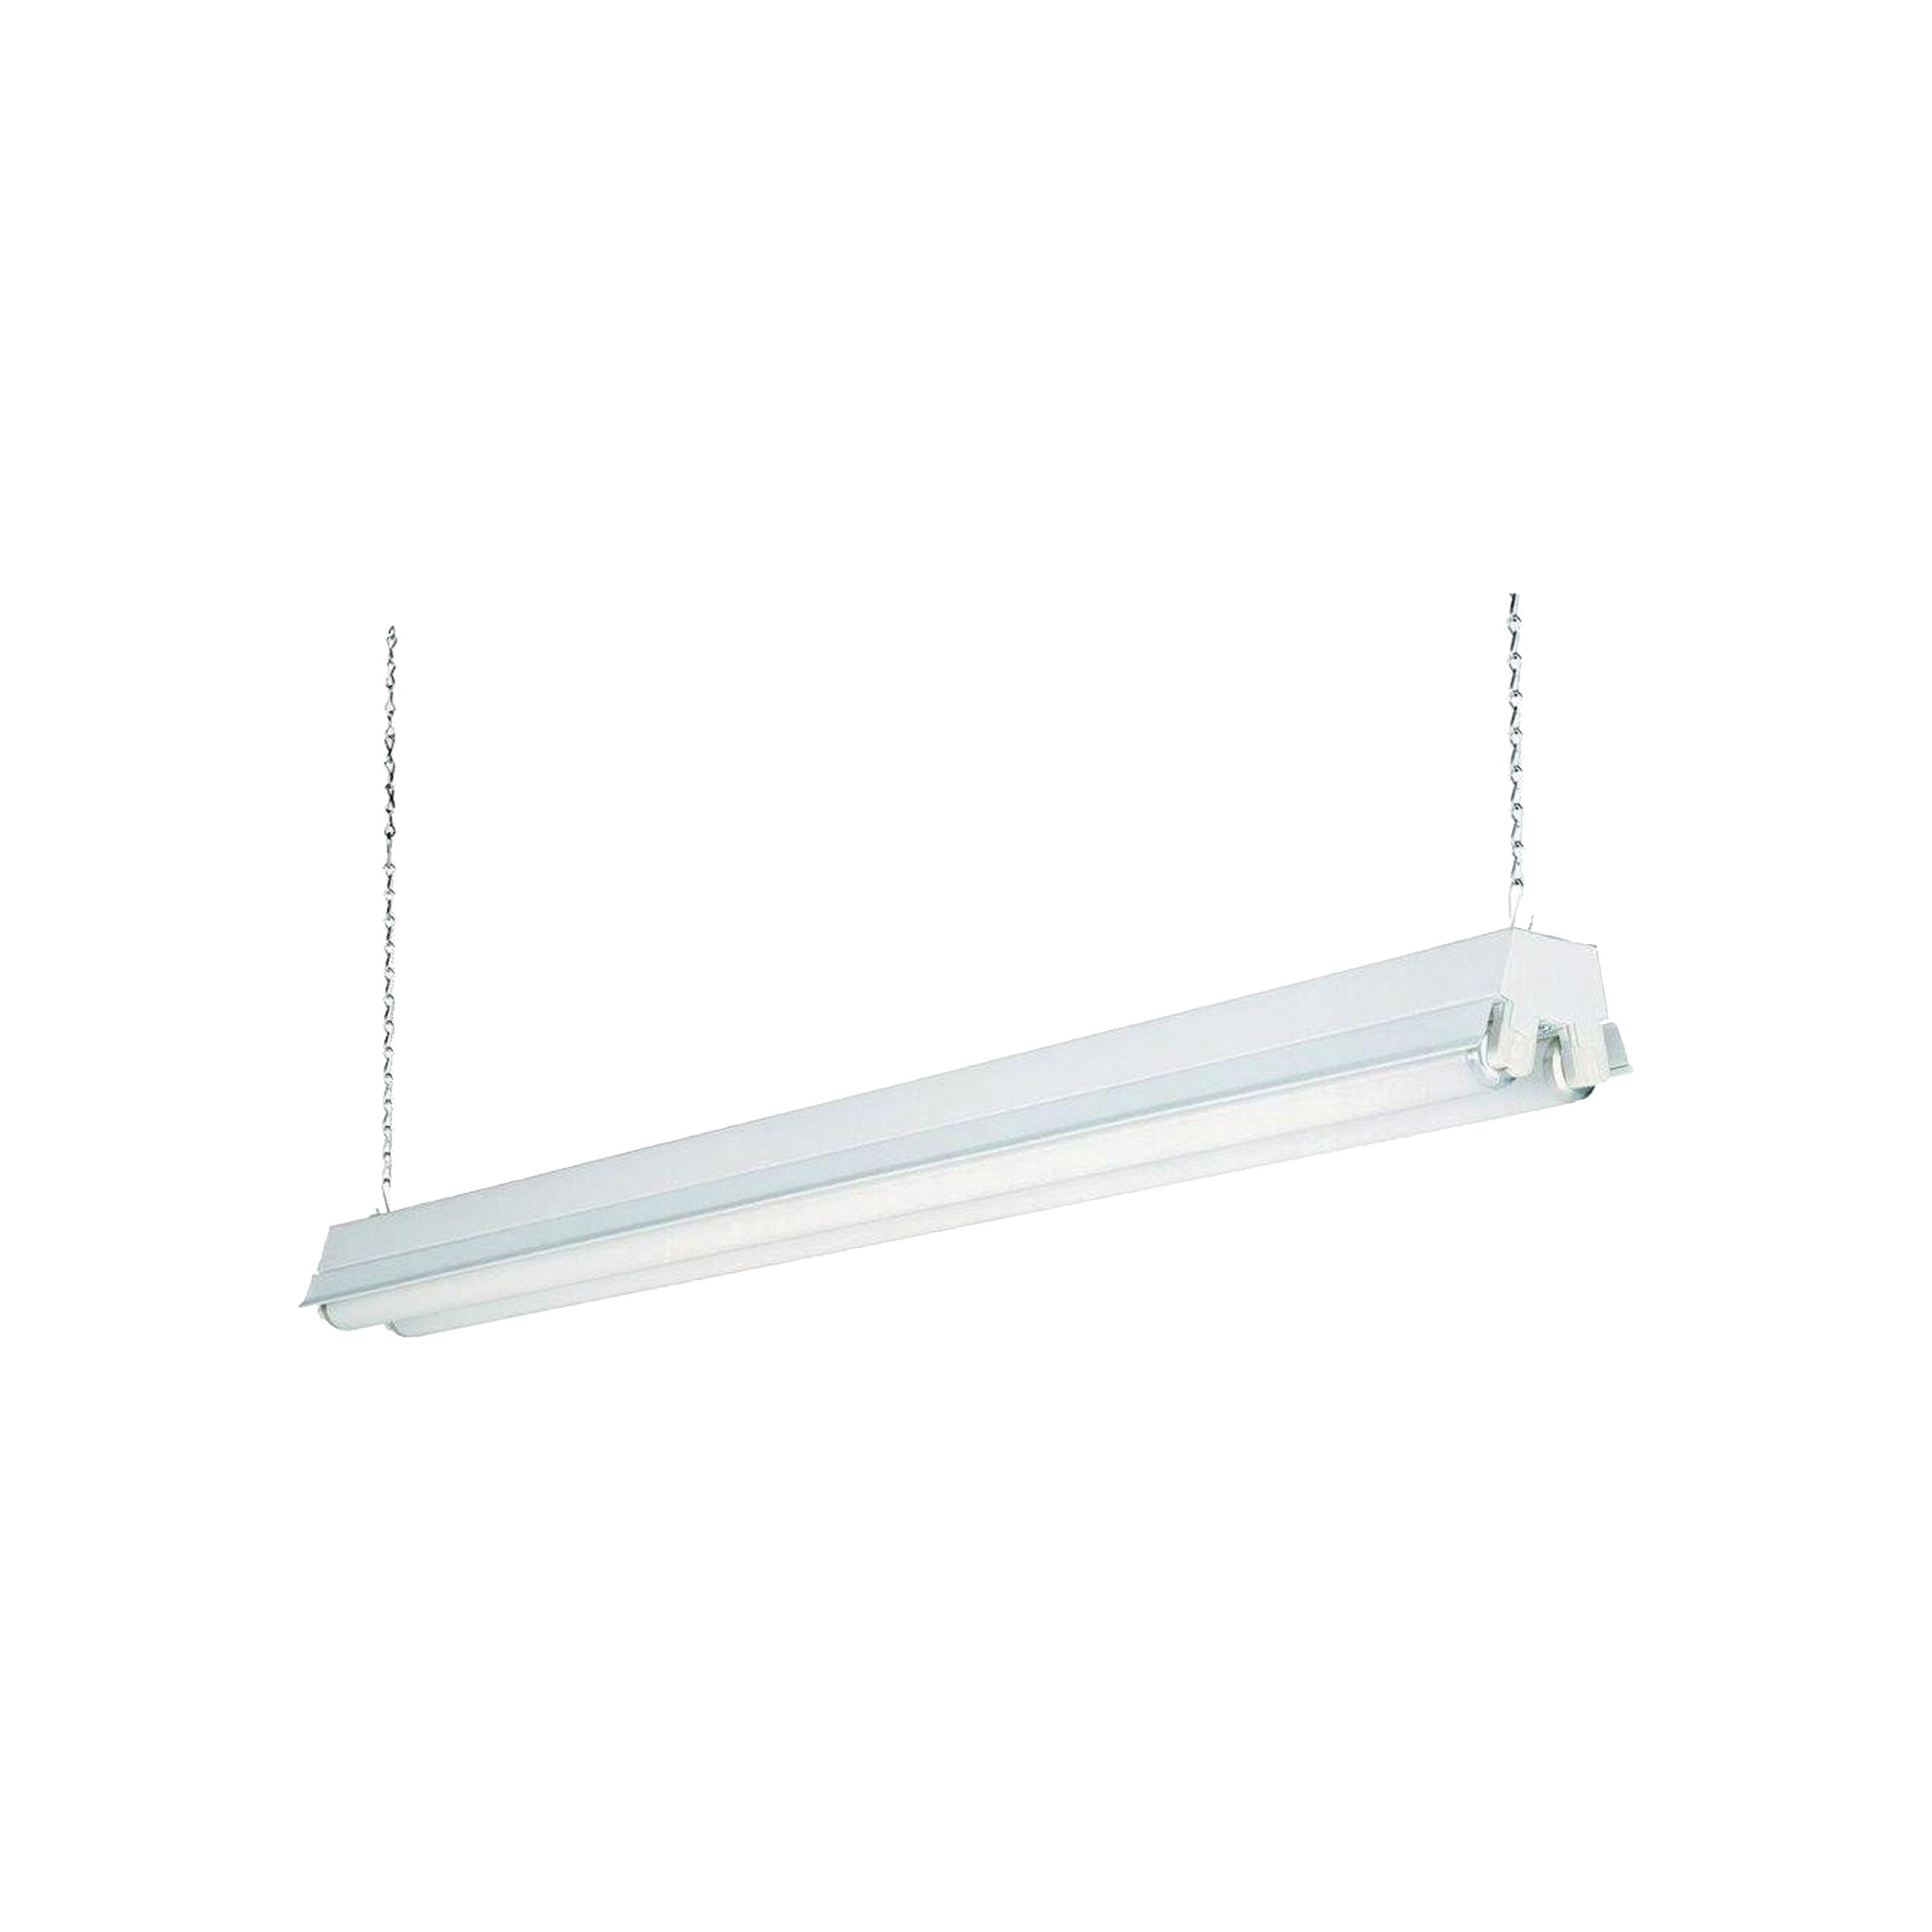 Picture of LITHONIA LIGHTING 1233/147YPY Shop Light, 120 V, 32 W, 2-Lamp, Fluorescent Lamp, Steel Fixture, White